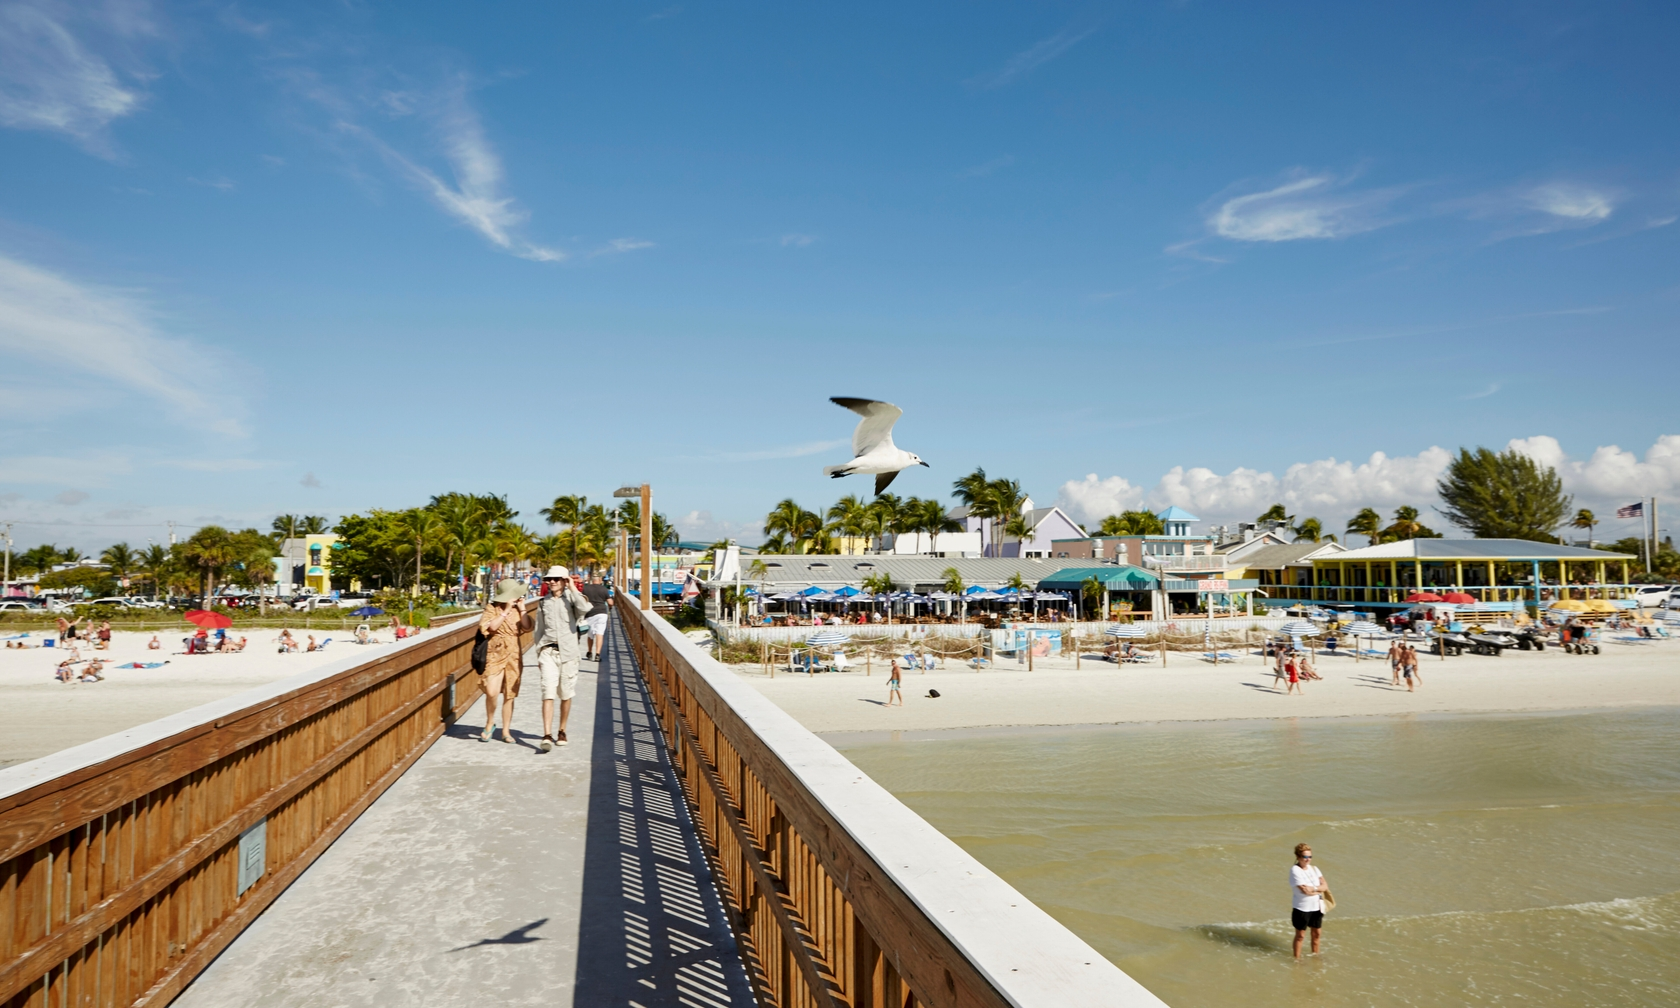 Holiday rentals in Florida